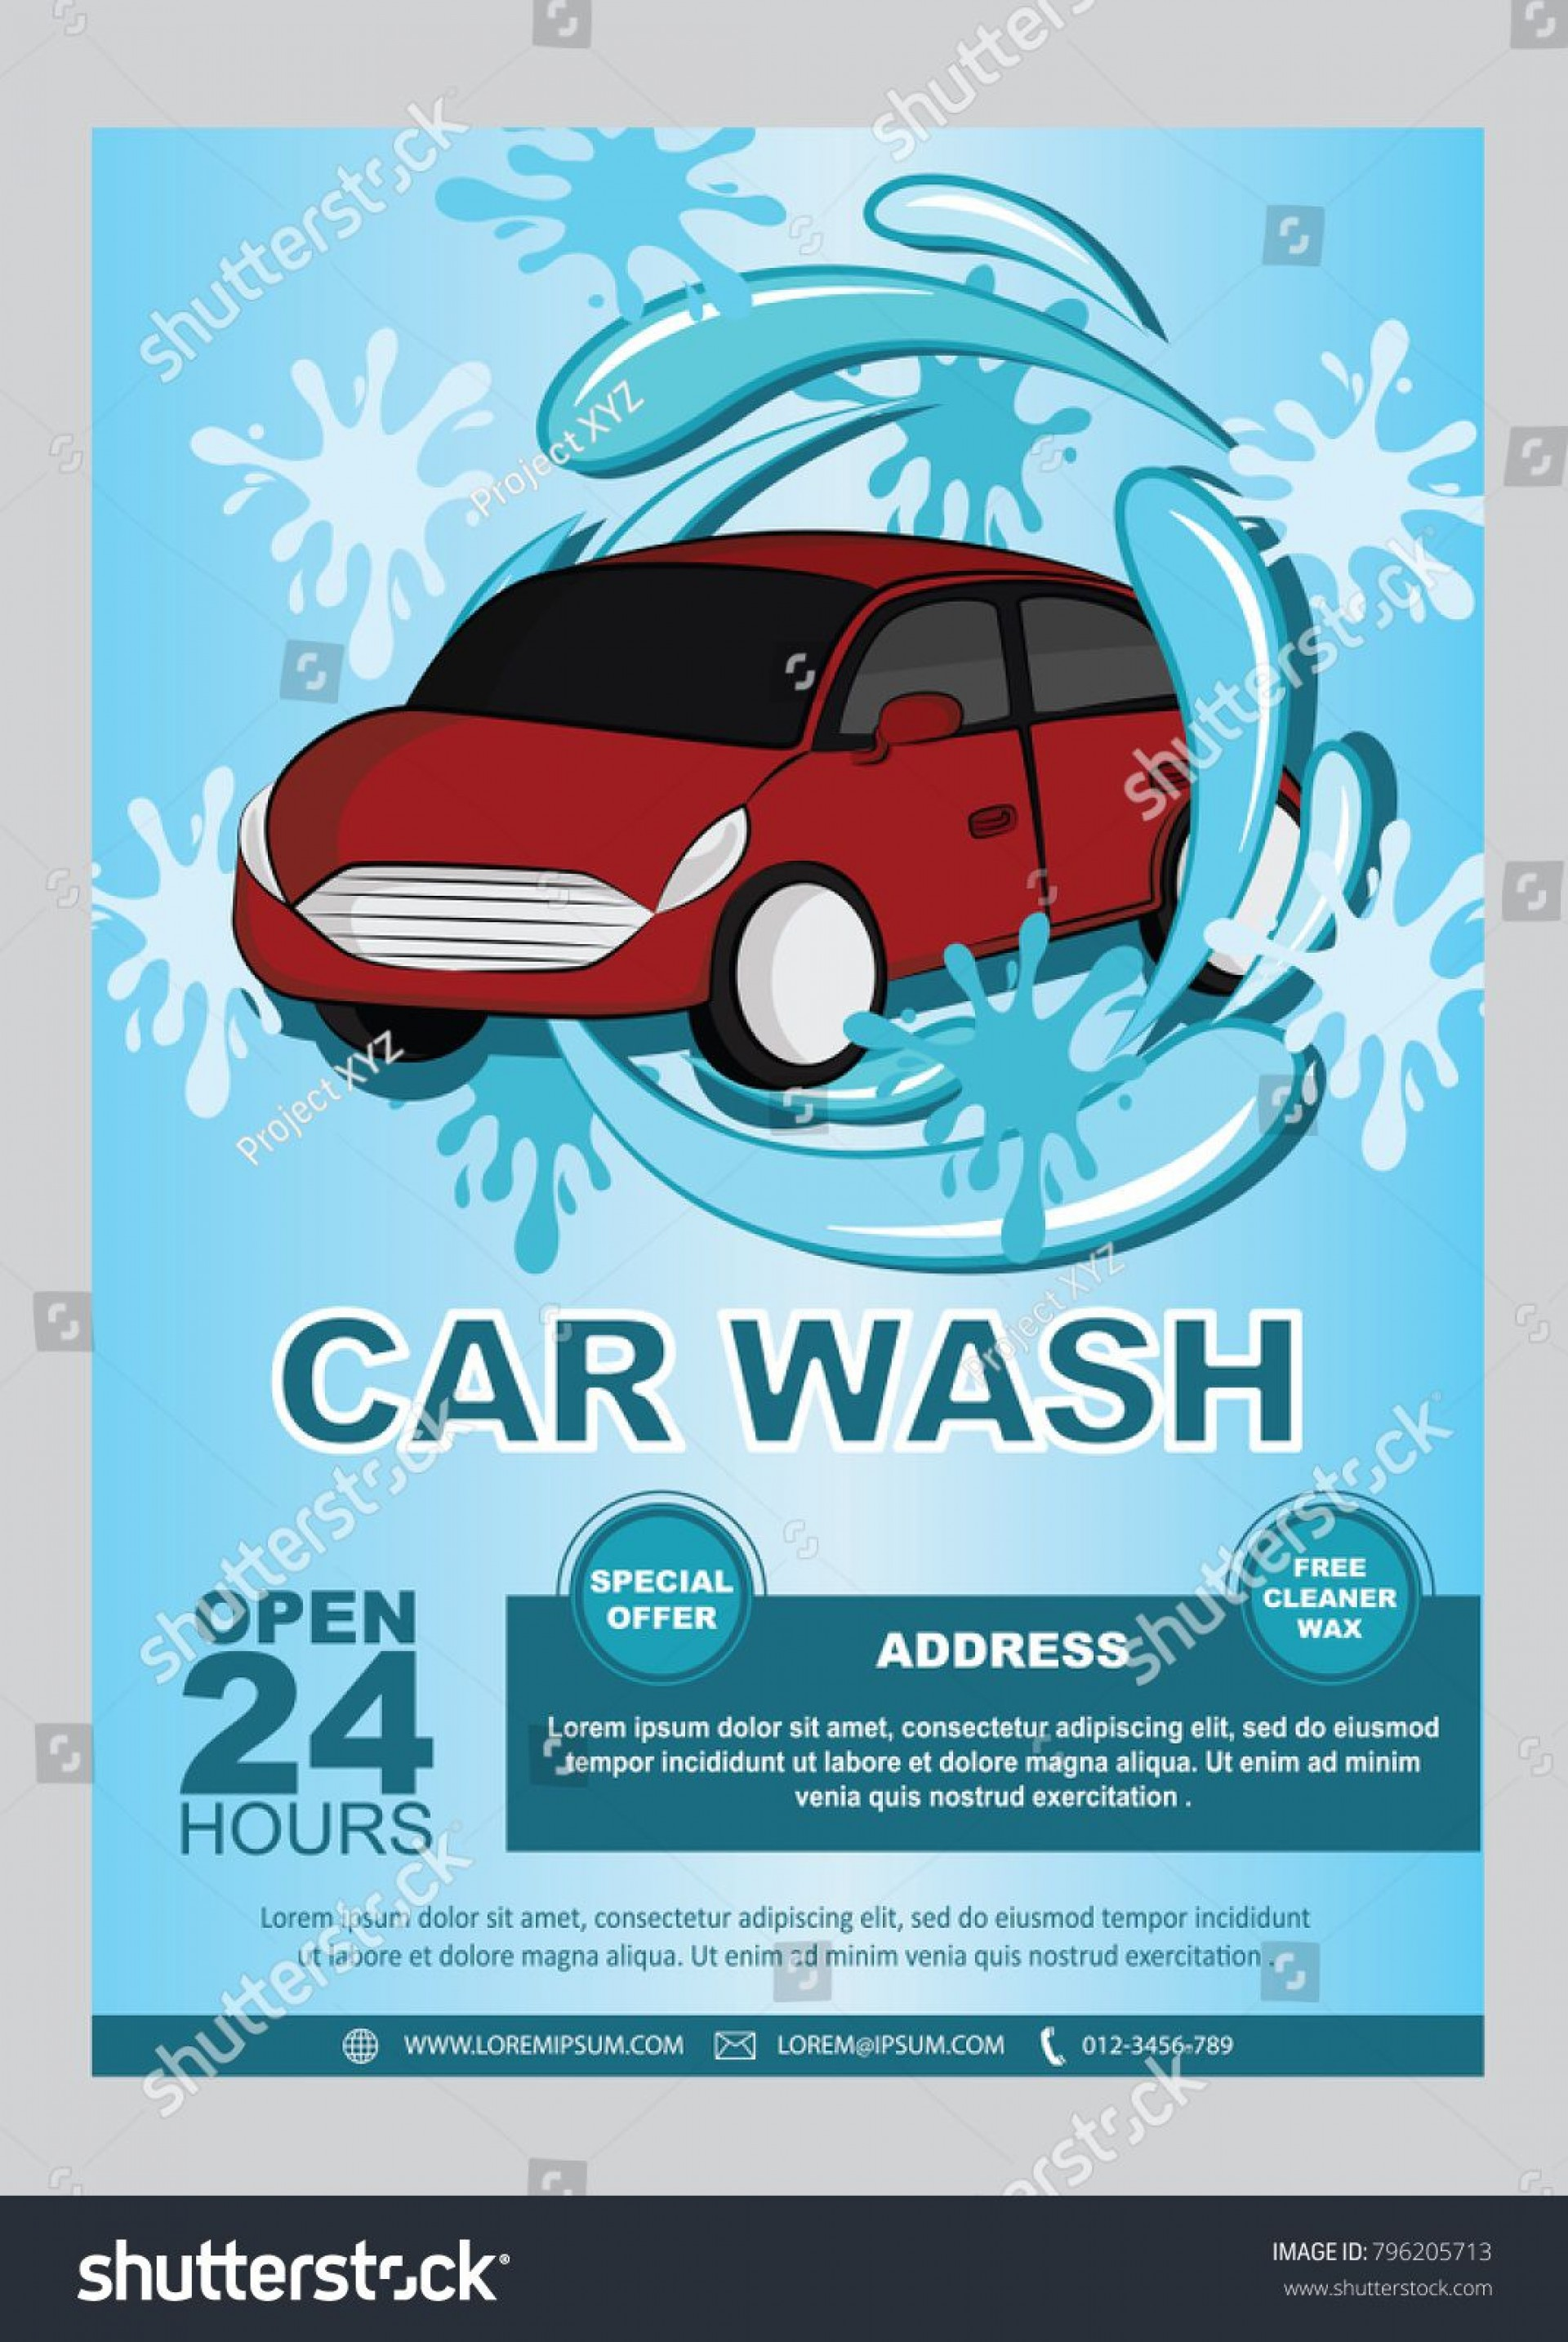 009 Magnificent Car Wash Flyer Template Concept  Free Fundraiser Download1920